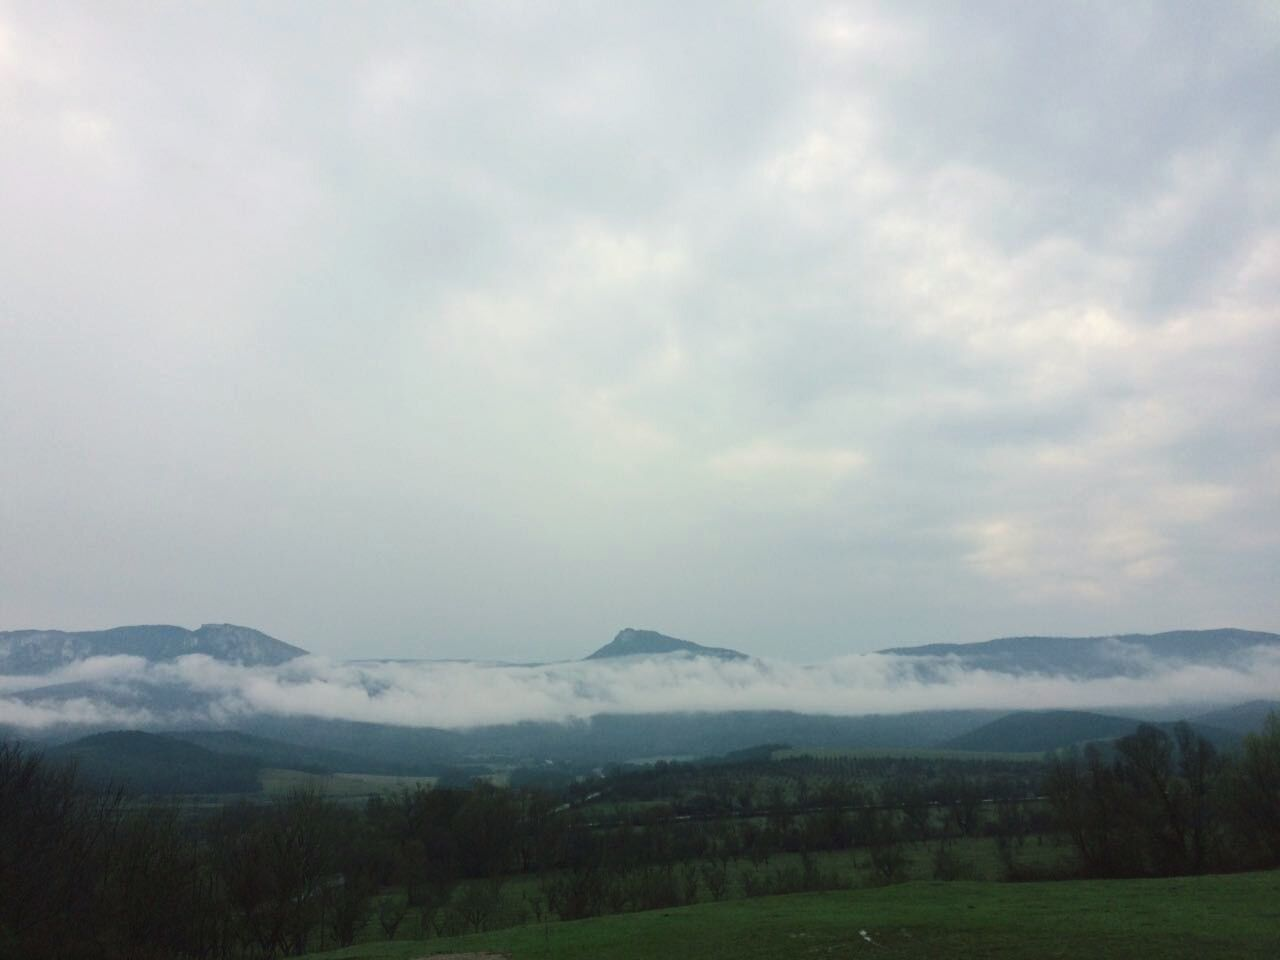 mountain, nature, beauty in nature, landscape, sky, no people, scenics, tranquility, outdoors, tranquil scene, day, scenery